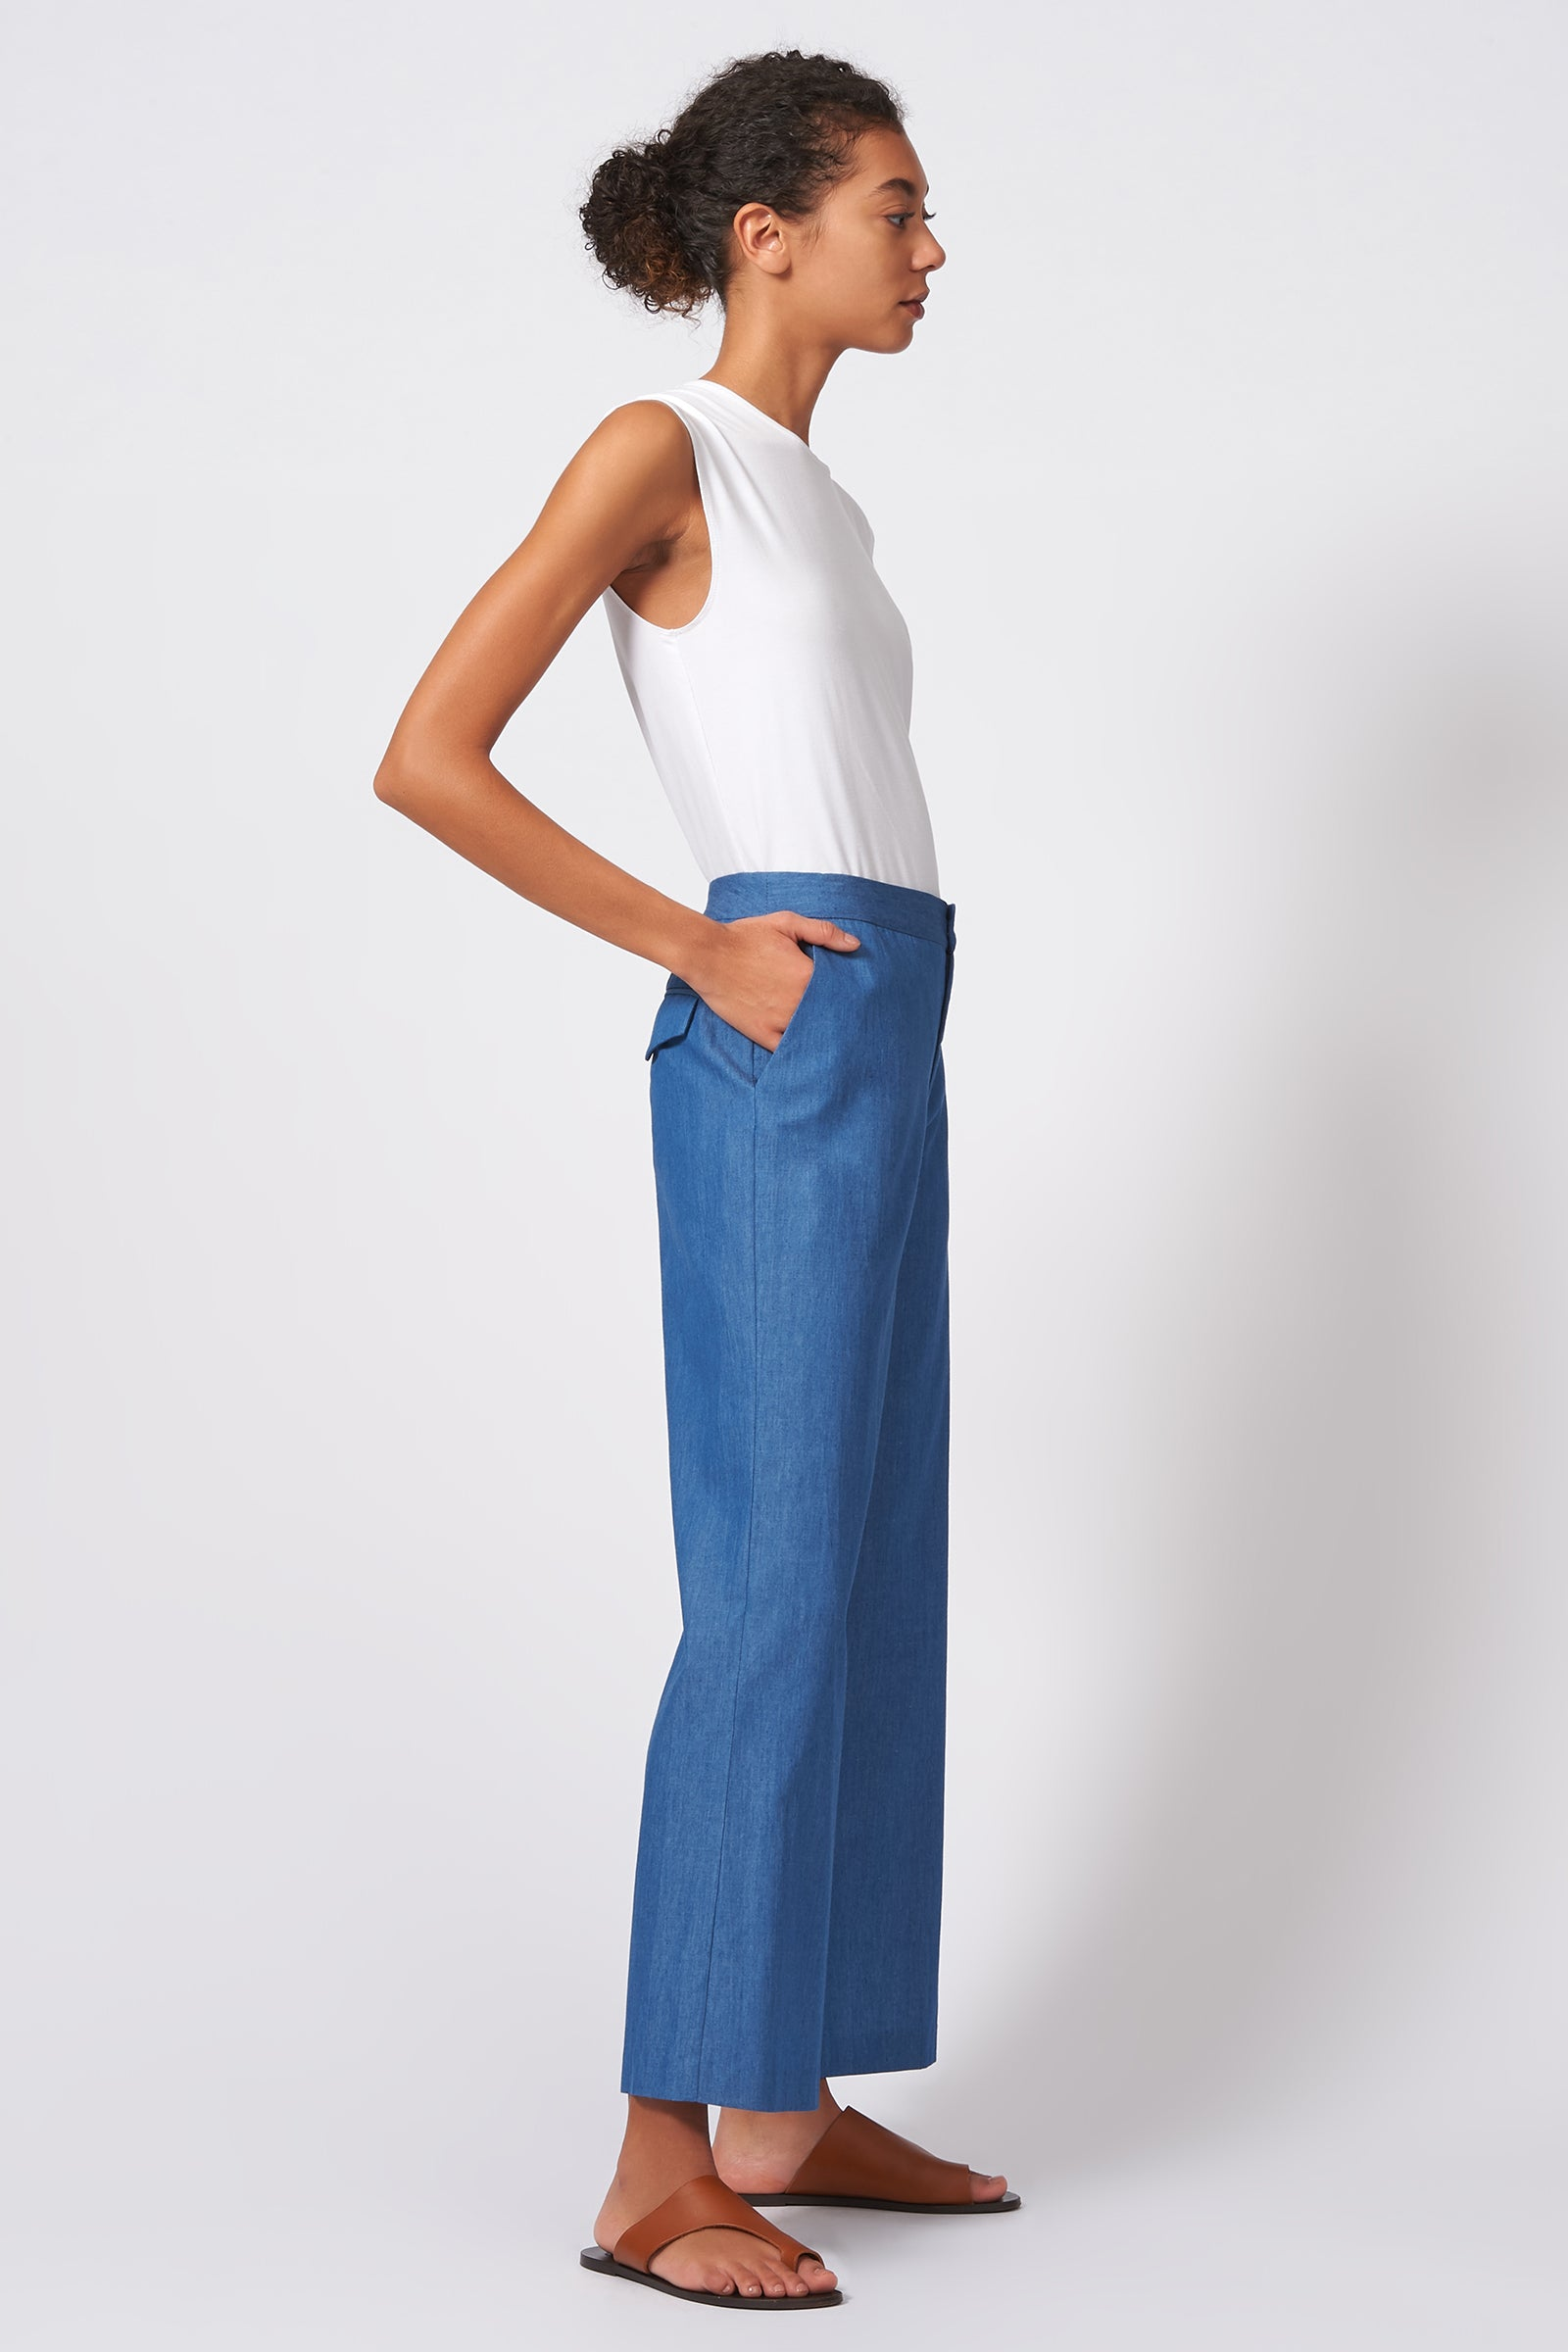 Kal Rieman Flat Front Trouser in Light Indigo on Model Full Side View